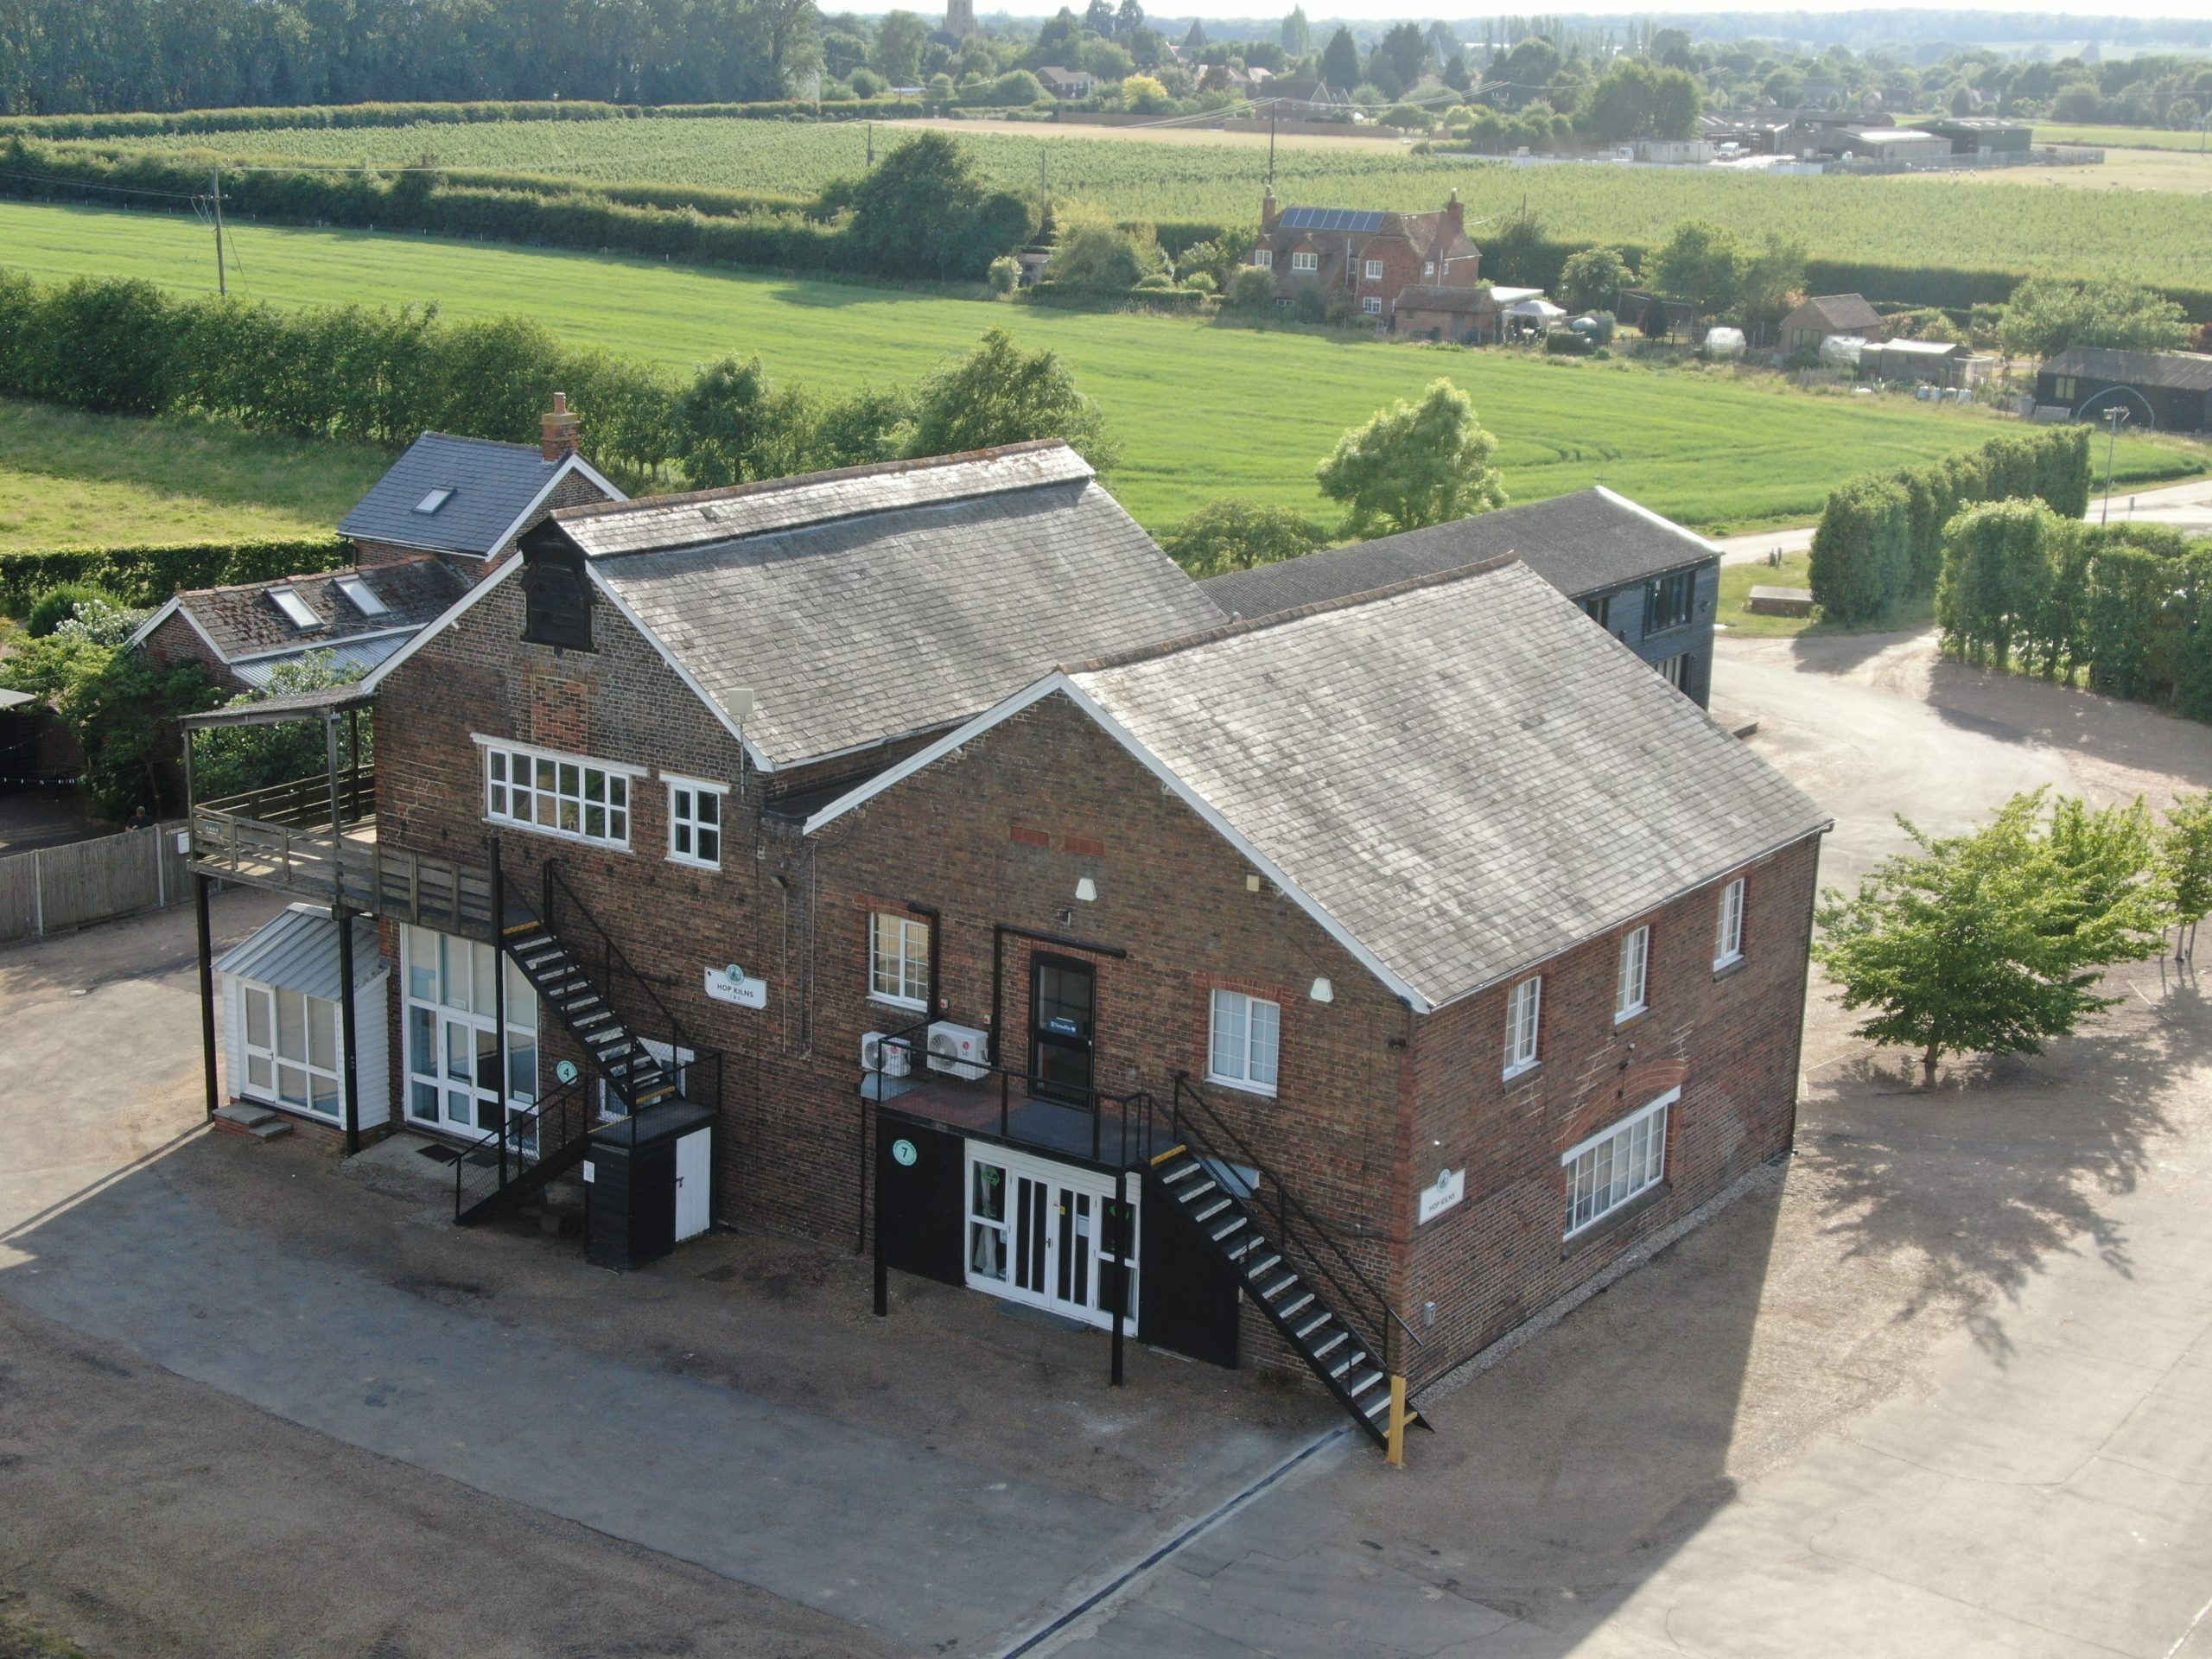 Exterior of Hop Kiln from Drone